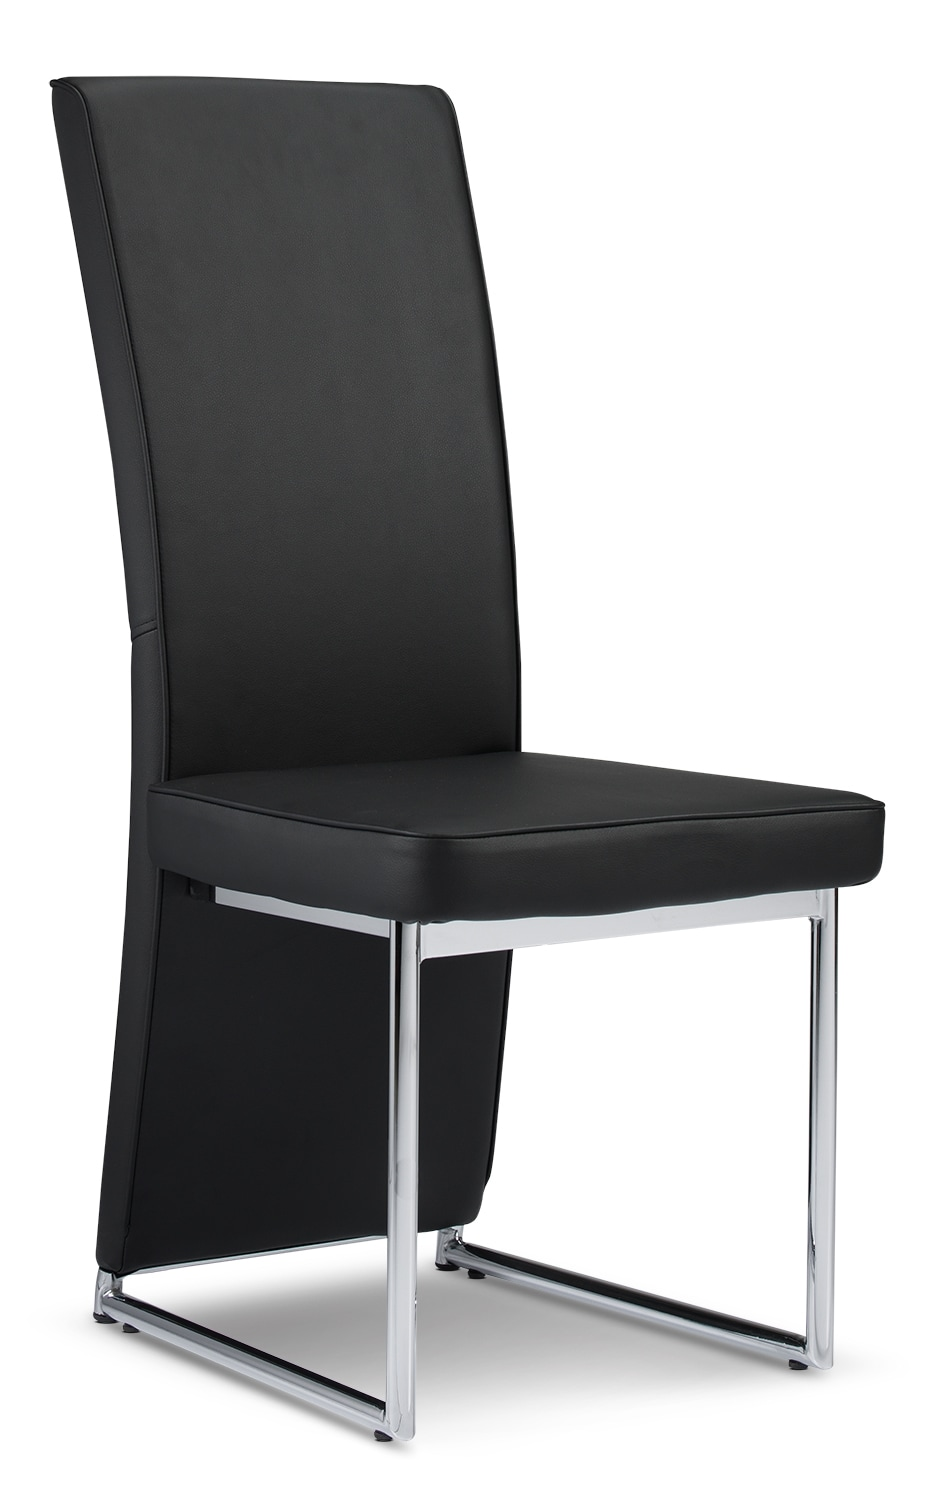 Bleecker Side Chair - Black